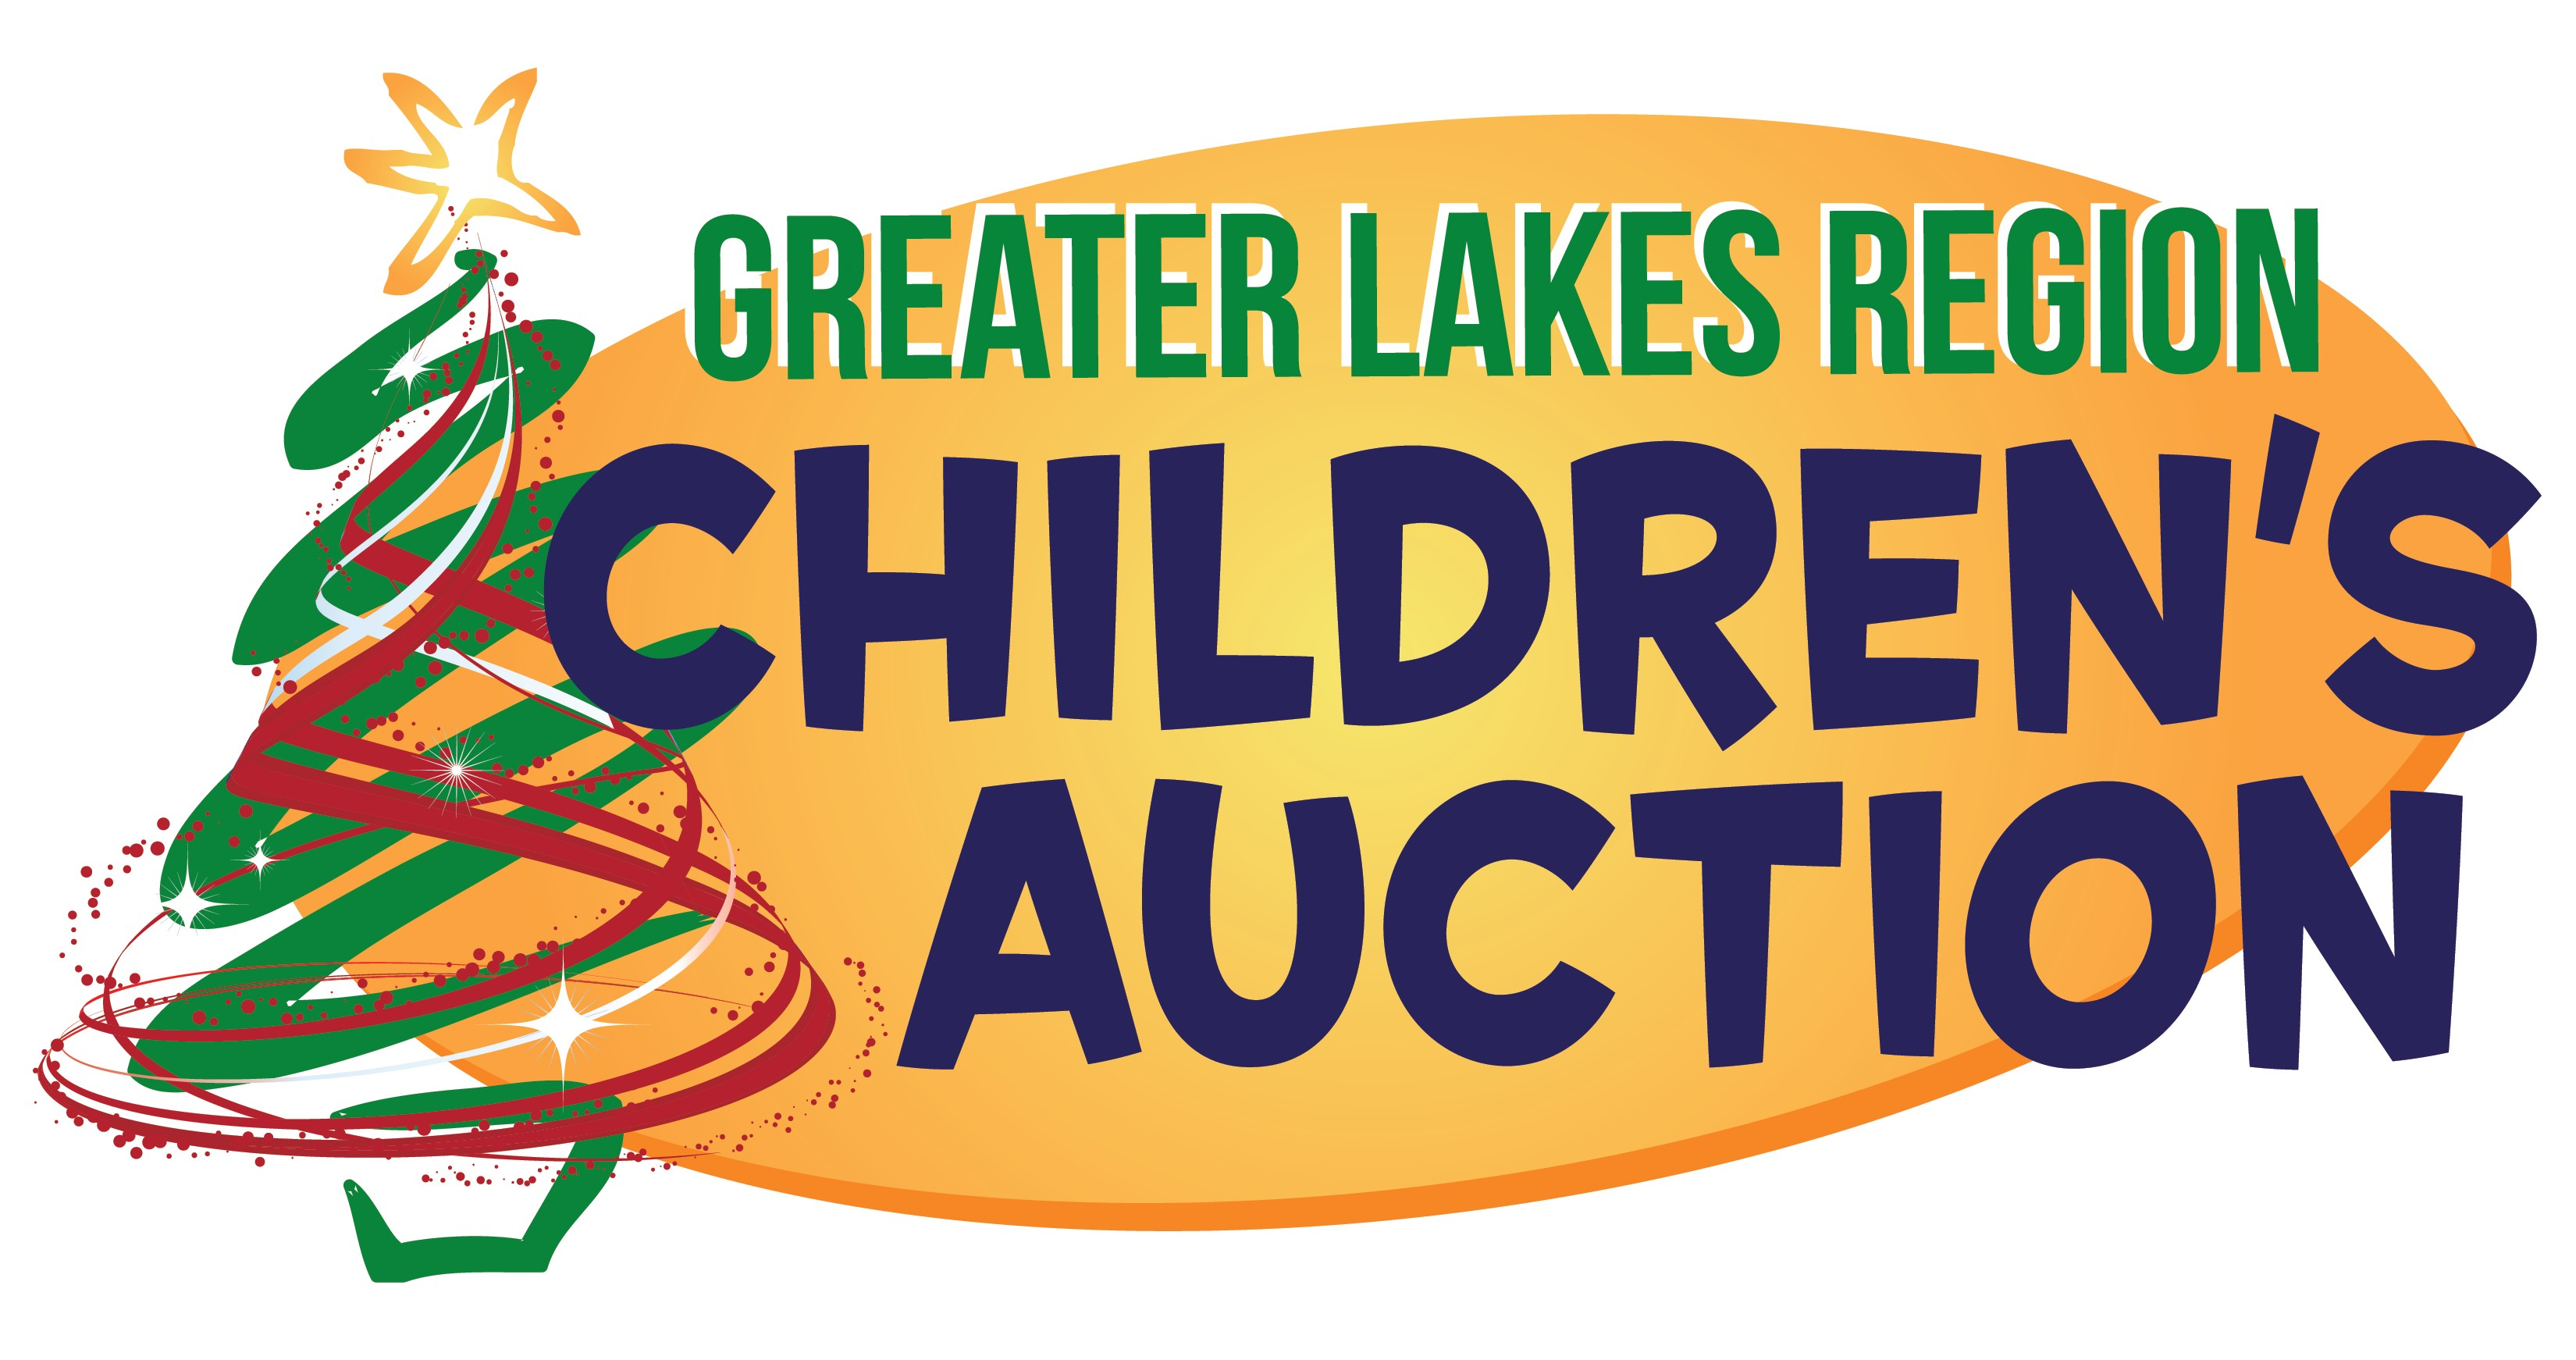 Greater Lakes Region Children's Auction